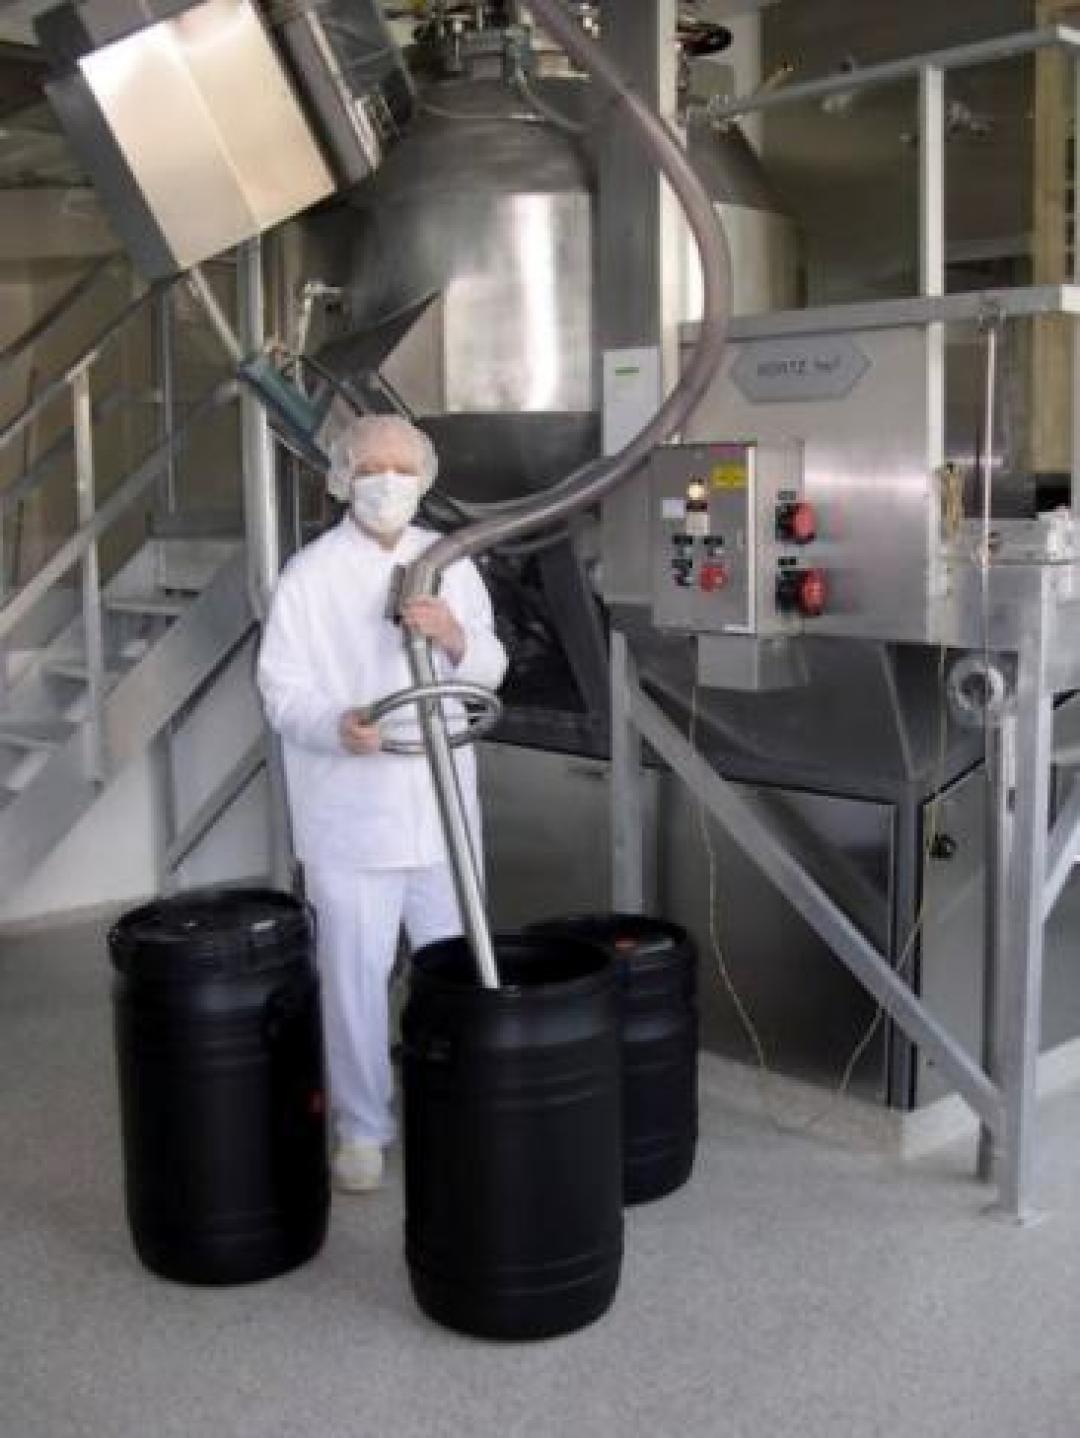 Operator in full PPE filling plastic conductive drum with dangerous product through hose